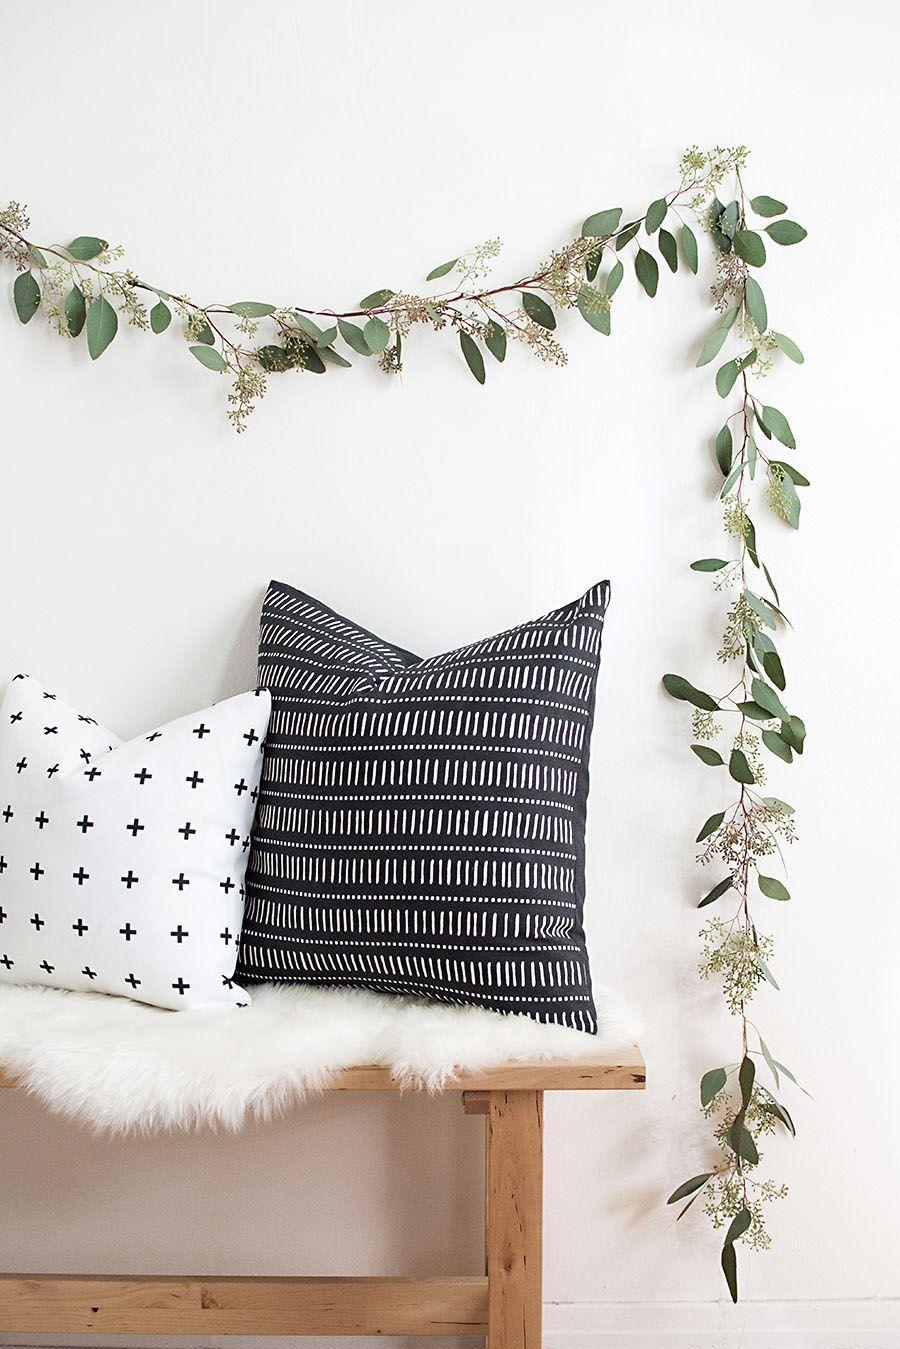 """<p>This delicate floral garland looks just as appropriate on Christmas morning as it does at a summer wedding. </p><p><a href=""""https://www.homeyohmy.com/diy-seeded-eucalyptus-garland/"""" rel=""""nofollow noopener"""" target=""""_blank"""" data-ylk=""""slk:Get the tutorial."""" class=""""link rapid-noclick-resp"""">Get the tutorial.</a></p><p><a class=""""link rapid-noclick-resp"""" href=""""https://www.amazon.com/gonicc-Professional-GPPS-1012-Satisfaction-Guarantee/dp/B07RPFML4S/?tag=syn-yahoo-20&ascsubtag=%5Bartid%7C10072.g.37499128%5Bsrc%7Cyahoo-us"""" rel=""""nofollow noopener"""" target=""""_blank"""" data-ylk=""""slk:SHOP FLORAL SHEARS"""">SHOP FLORAL SHEARS</a></p>"""